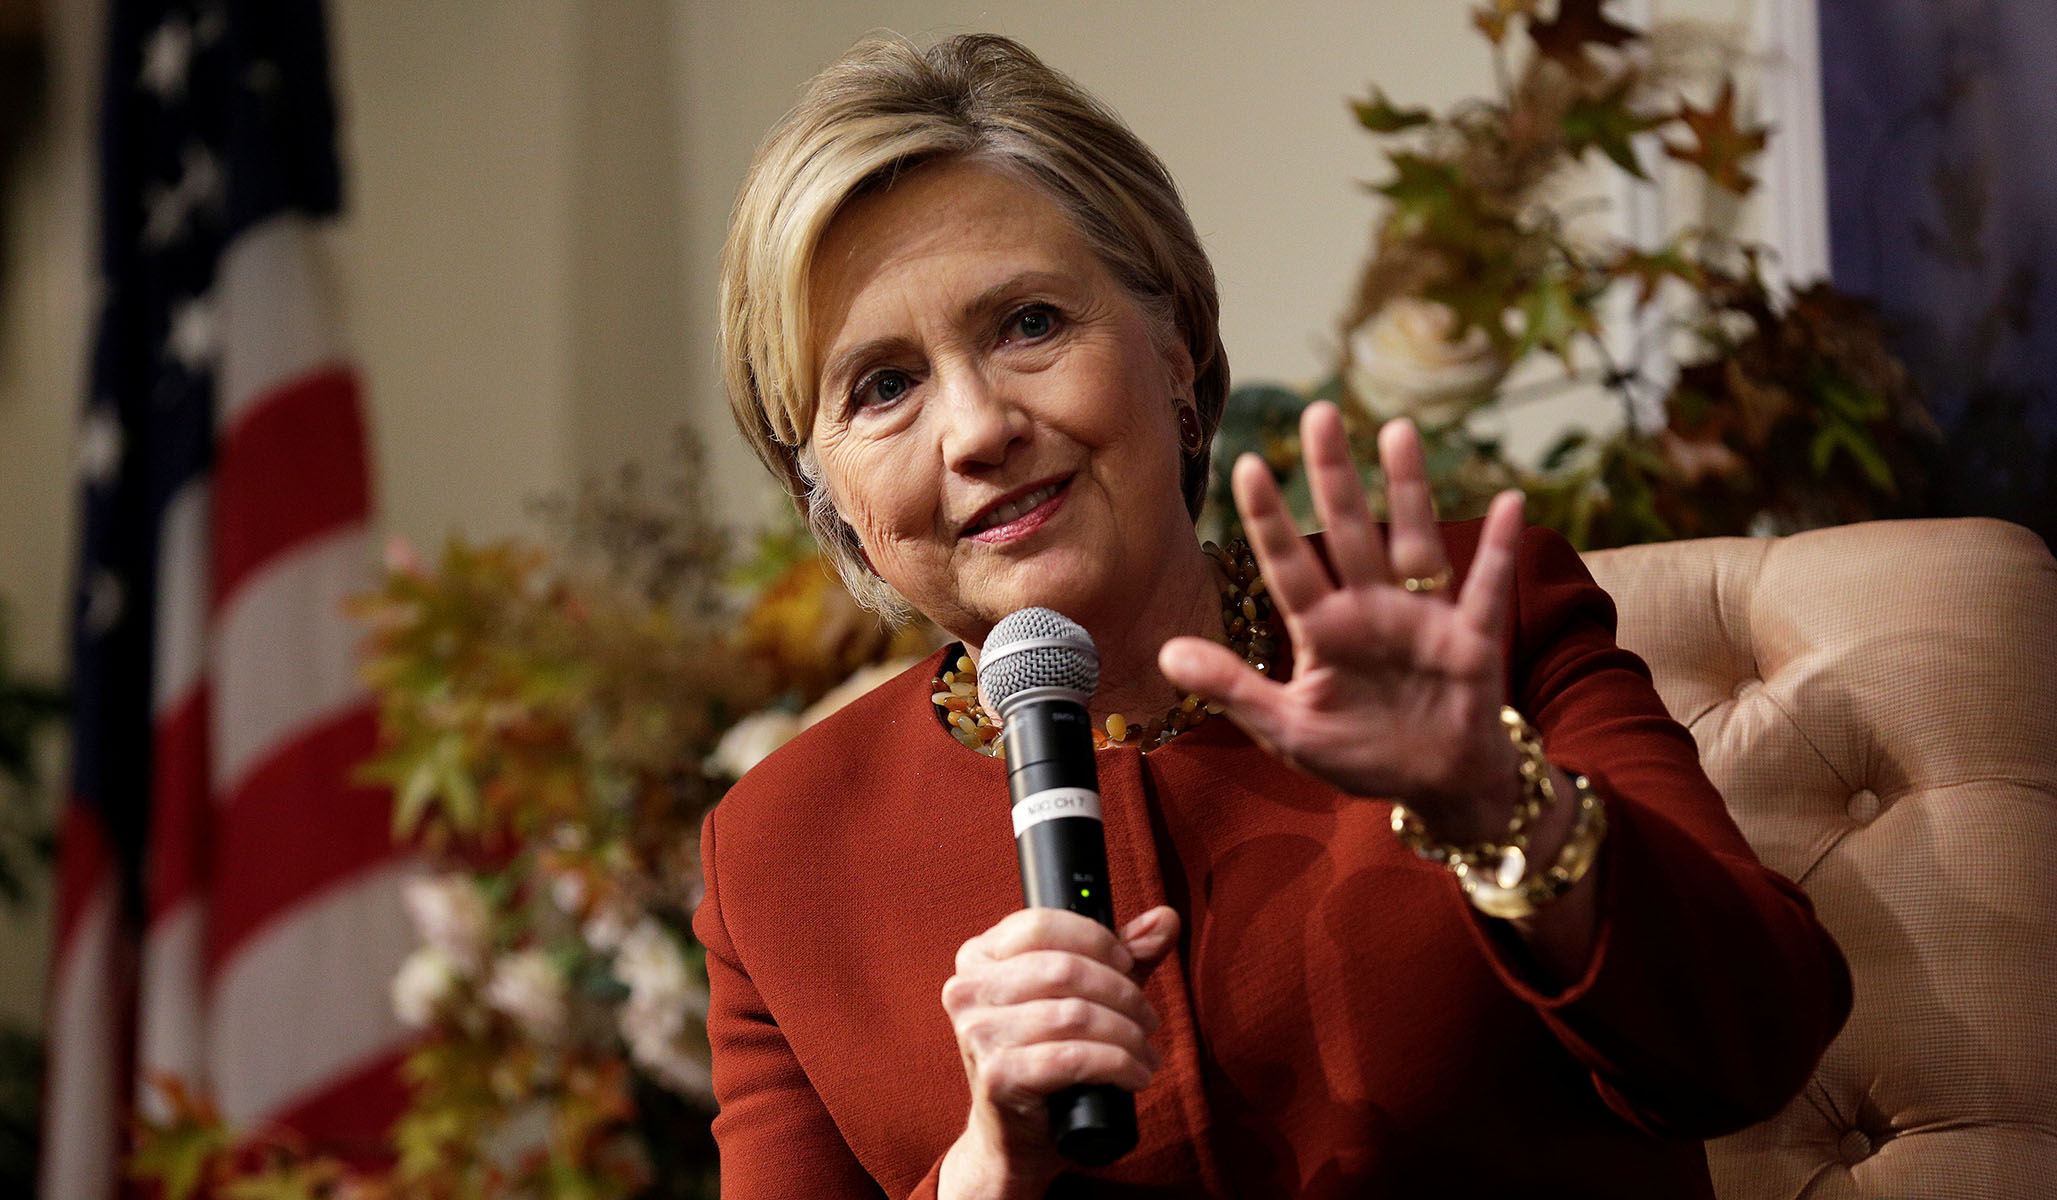 'Women Candidates' and 'Hillary Clinton' Are Not Interchangeable Terms